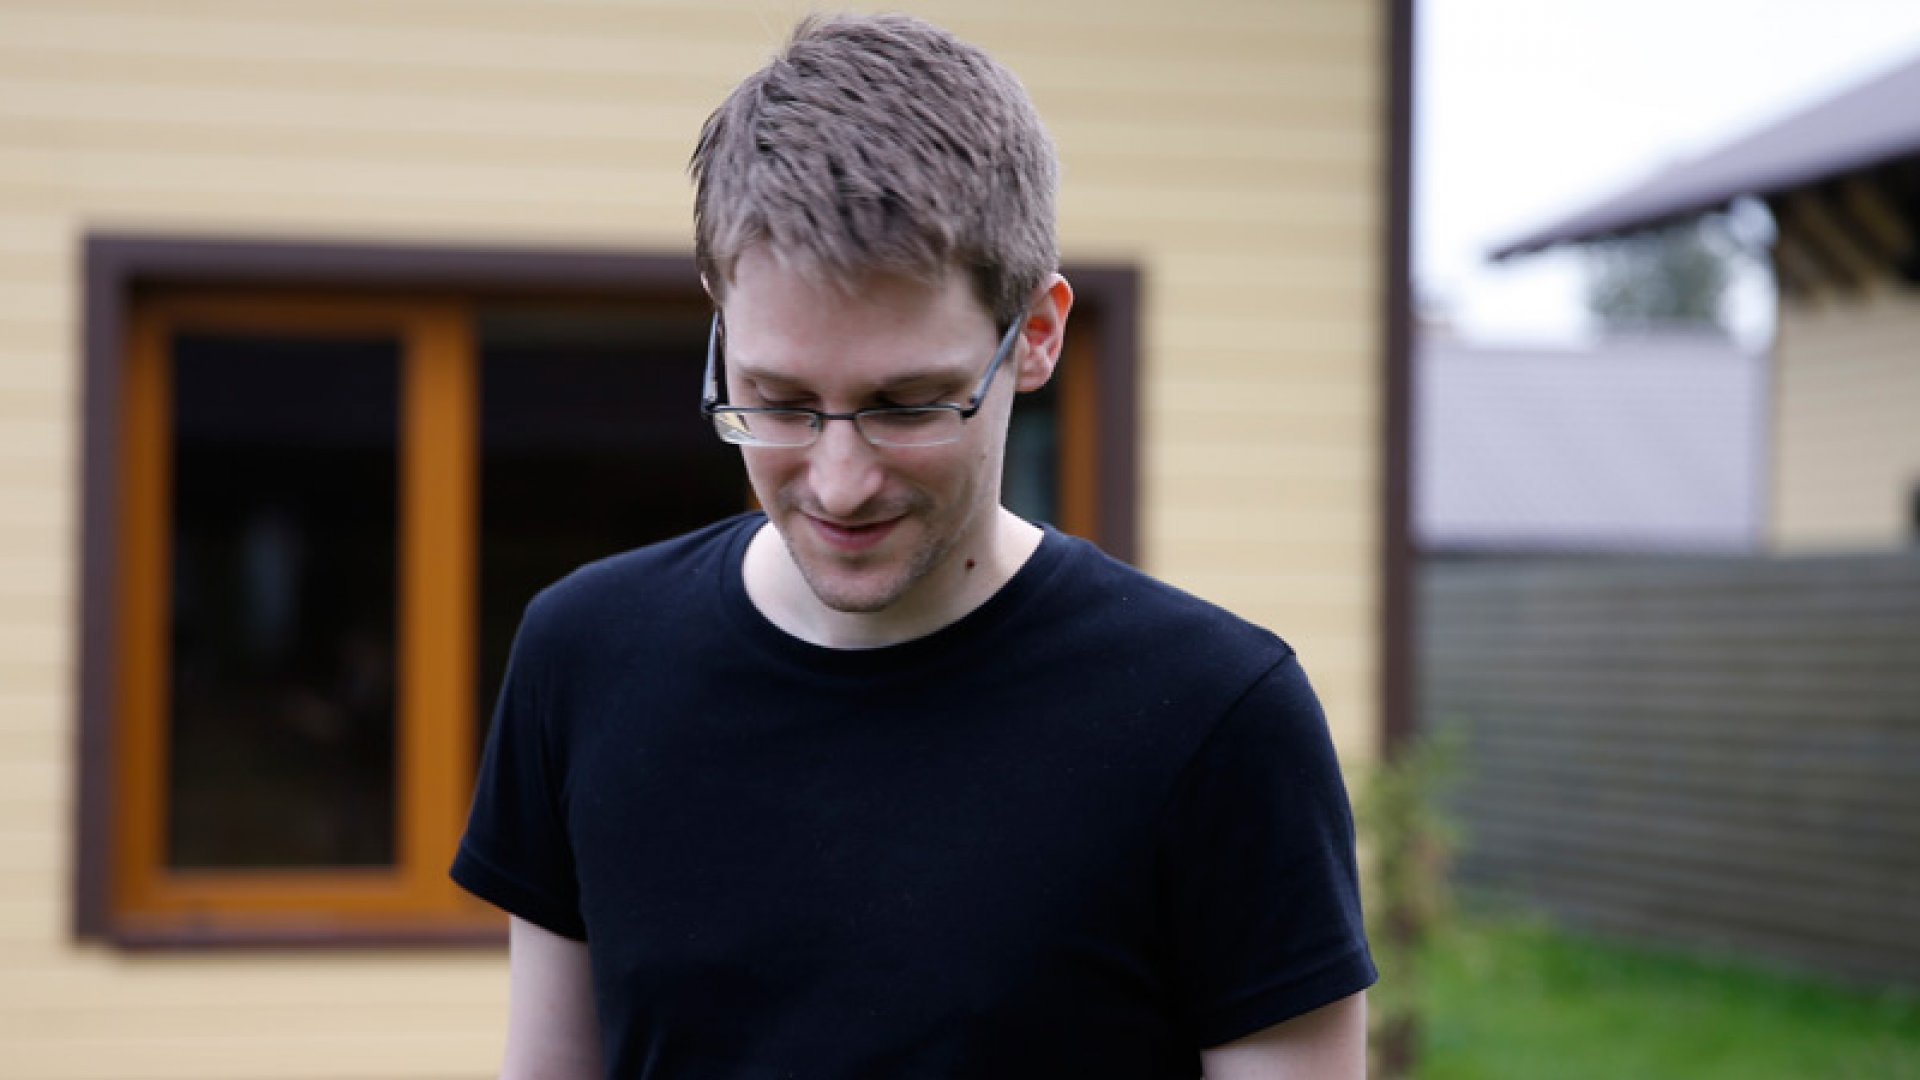 'Citizenfour': Why Edward Snowden Exposed the NSA